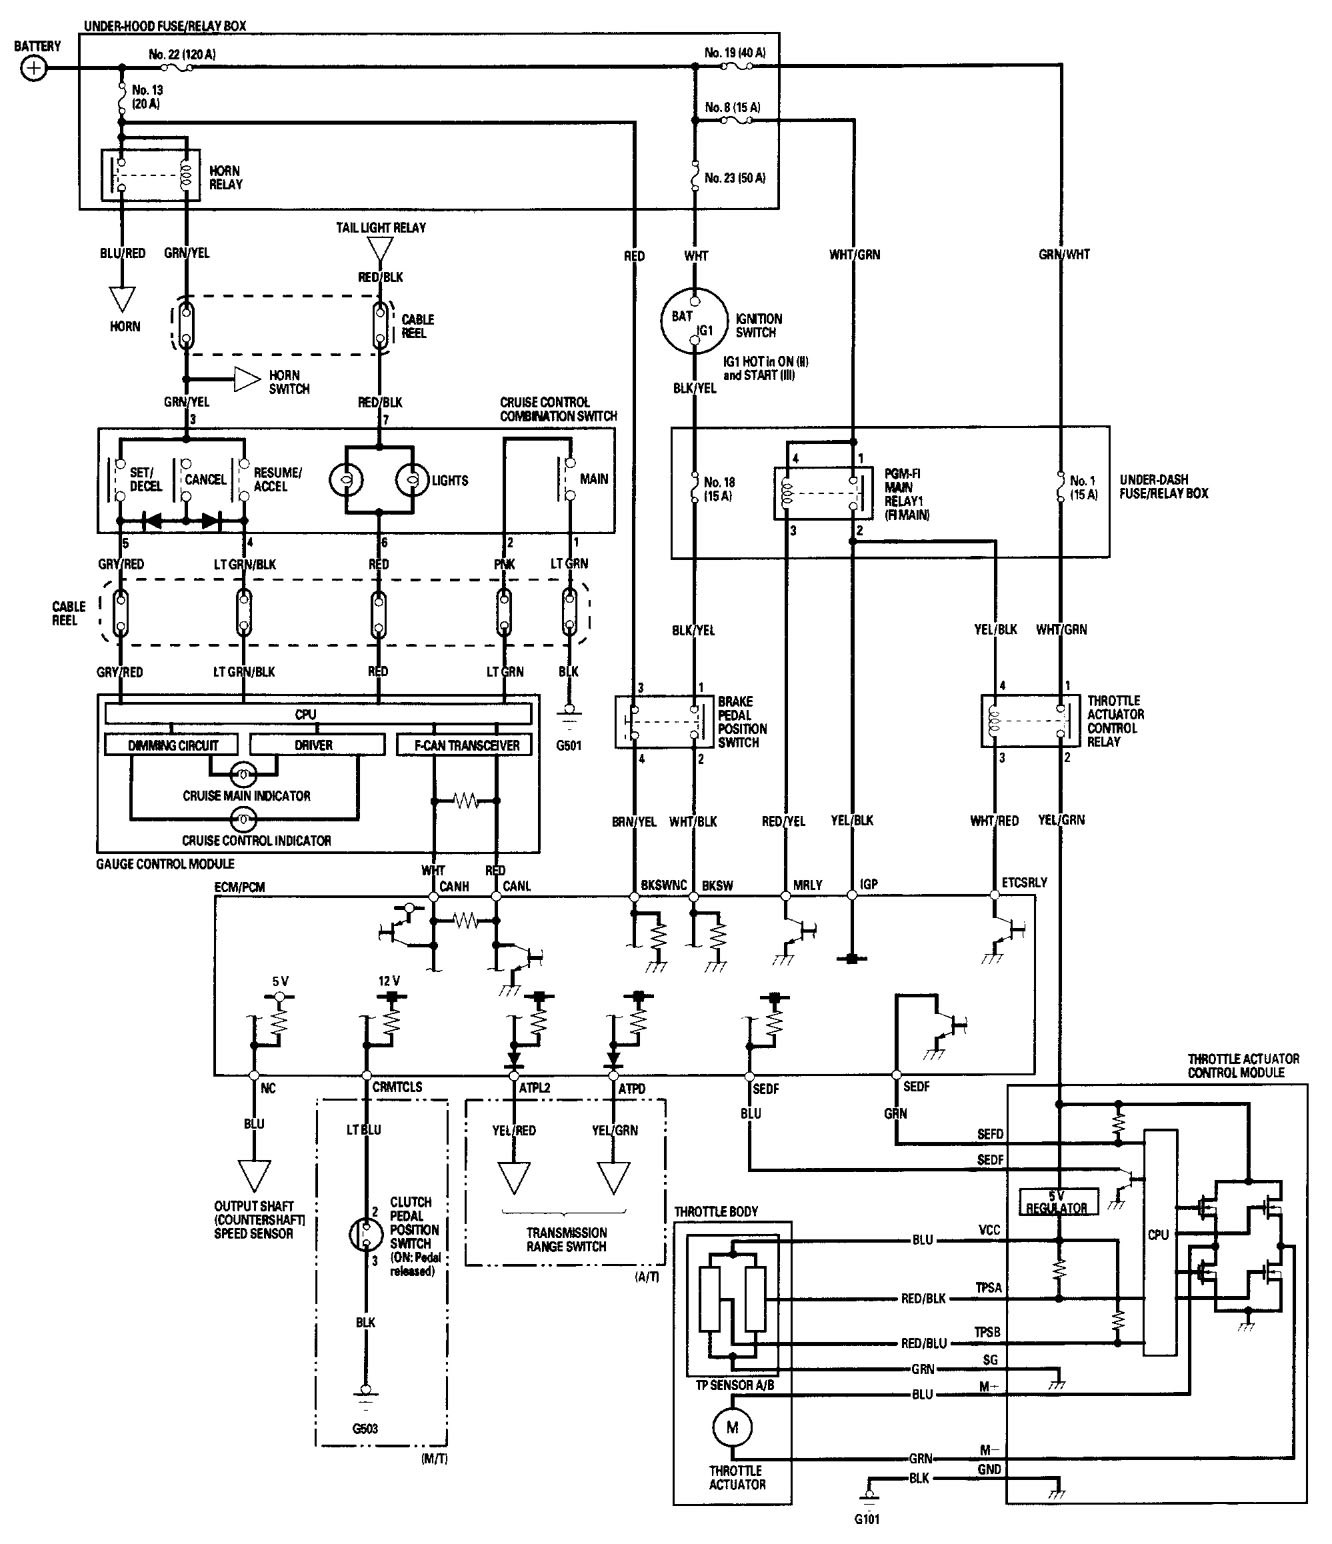 Diagram Wiring Harnesses At Carid Com Wiring Diagram